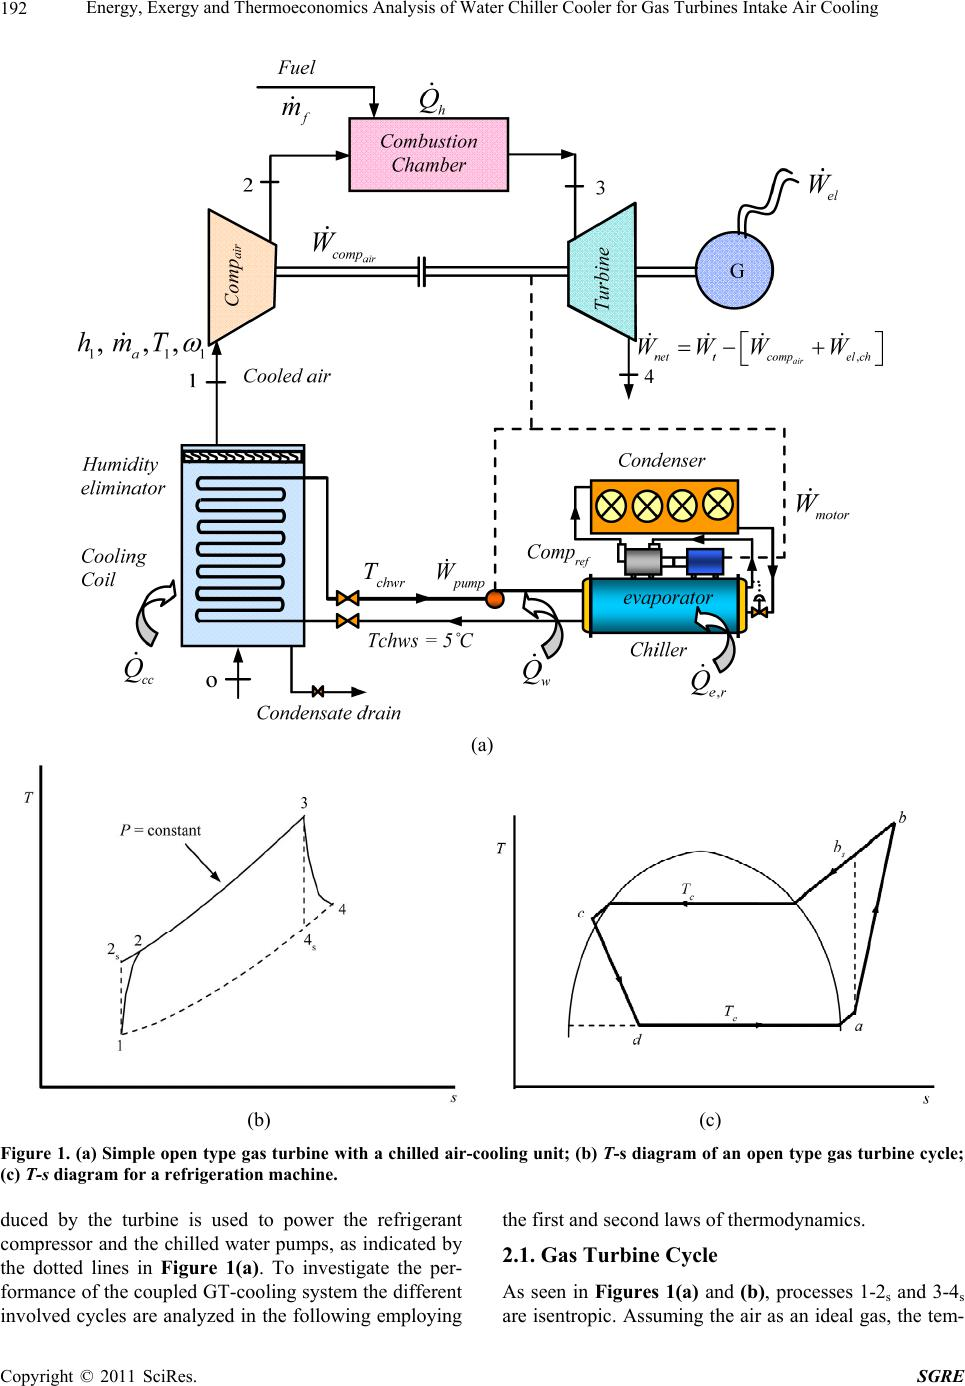 Energy exergy and thermoeconomics analysis of water chiller energy exergy and thermoeconomics analysis of water chiller cooler for gas turbines intake air cooling pooptronica